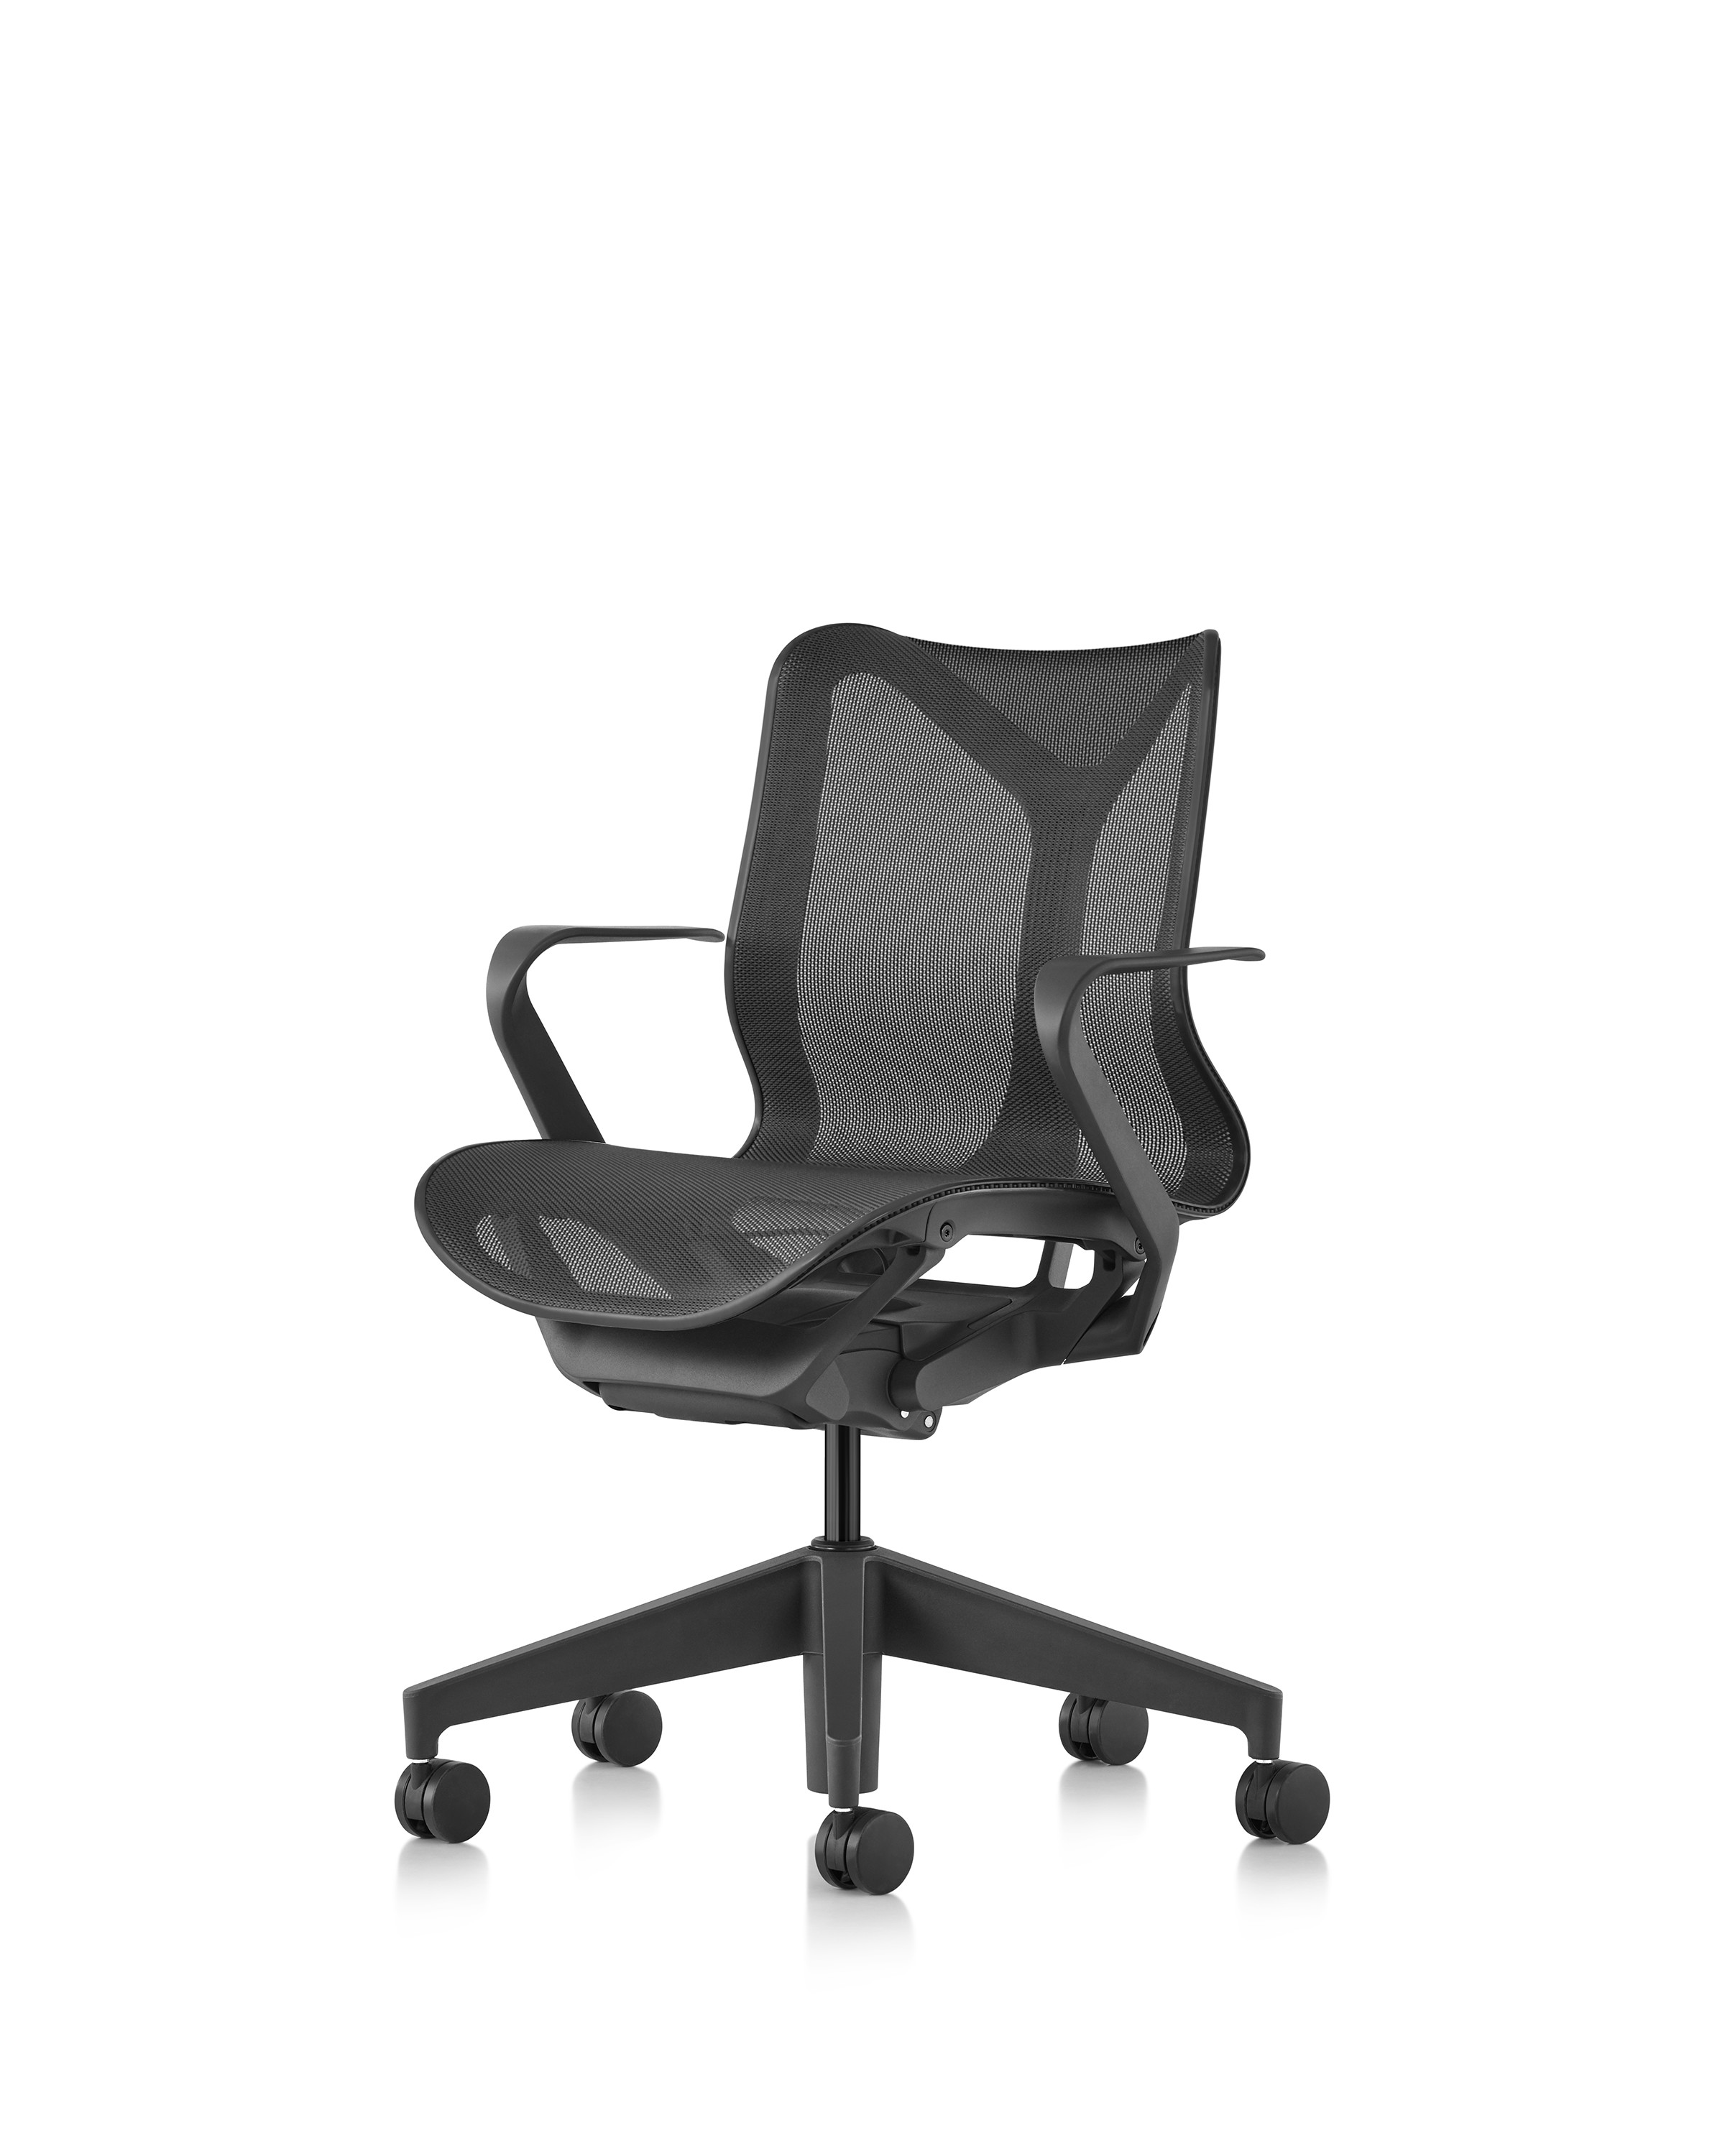 Image of Herman Miller Cosm Low Back Chair